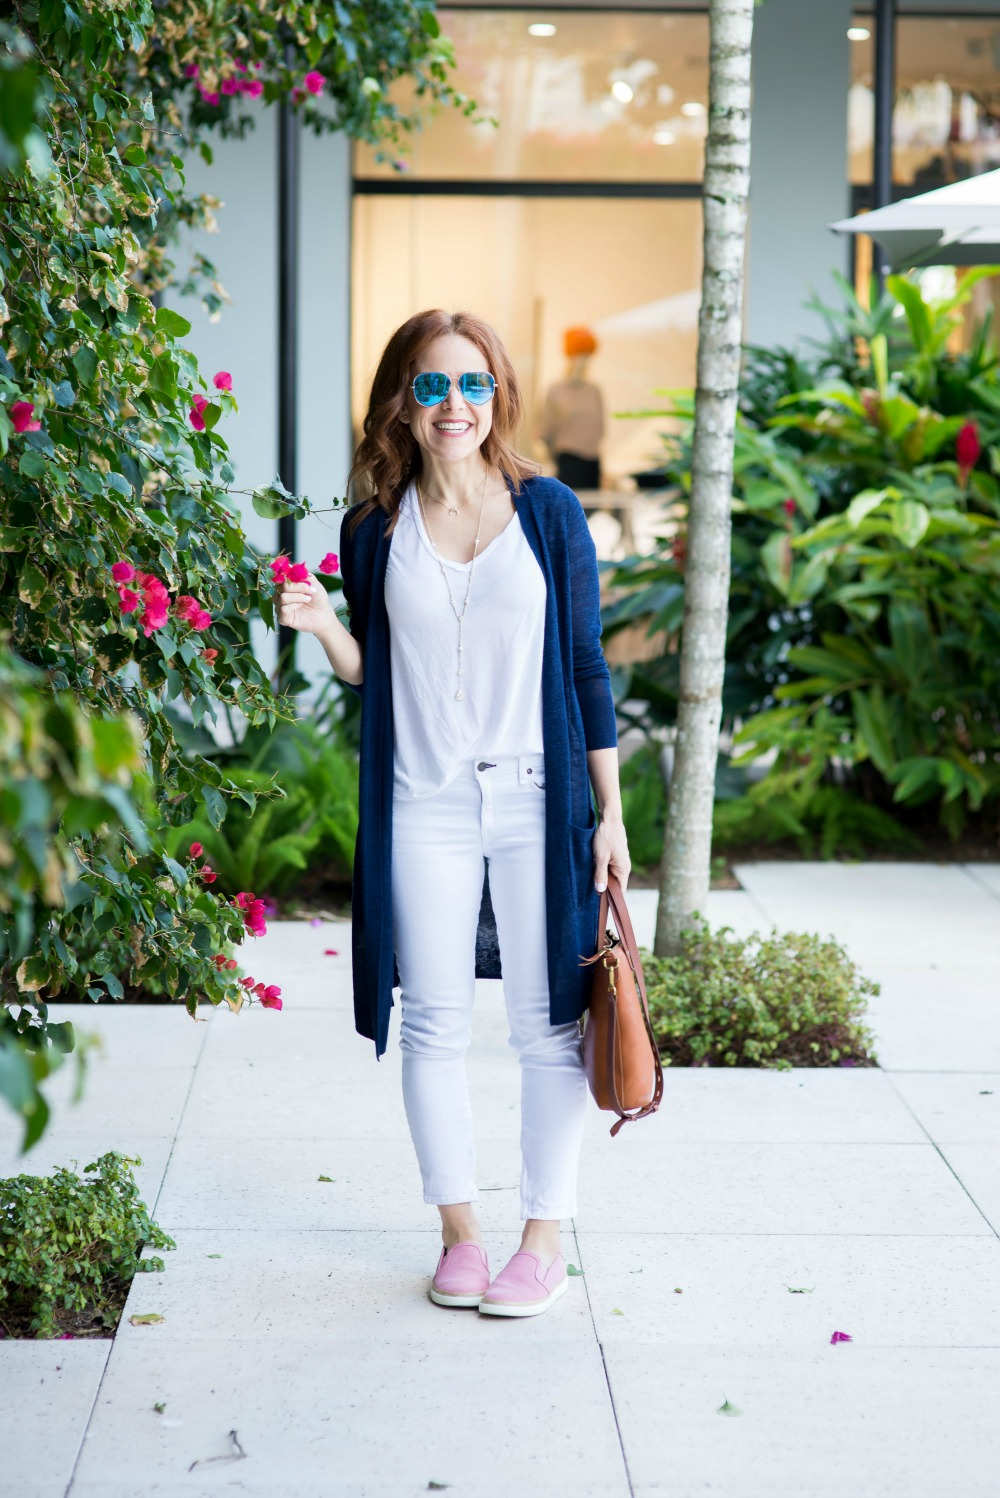 How to style a white tee and jeans - White Tee and Jeans outfit by popular Florida style blogger The Modern Savvy